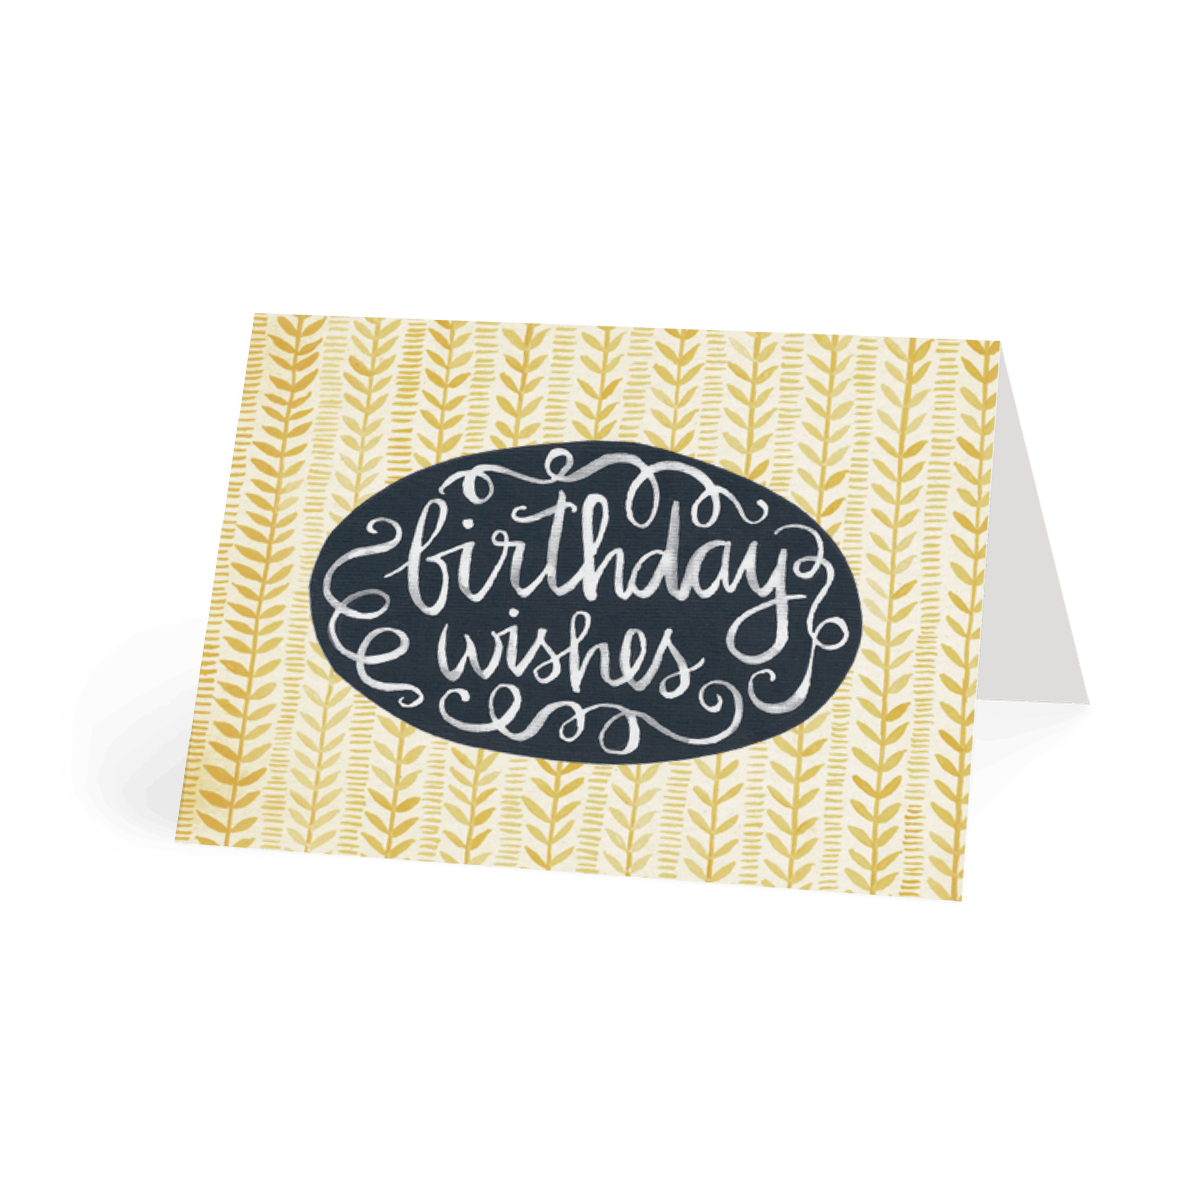 Https%3a%2f%2fwww.papier.com%2fproduct image%2f1422%2f14%2fbirthday wishes 395 front 1453909874.png?ixlib=rb 1.1